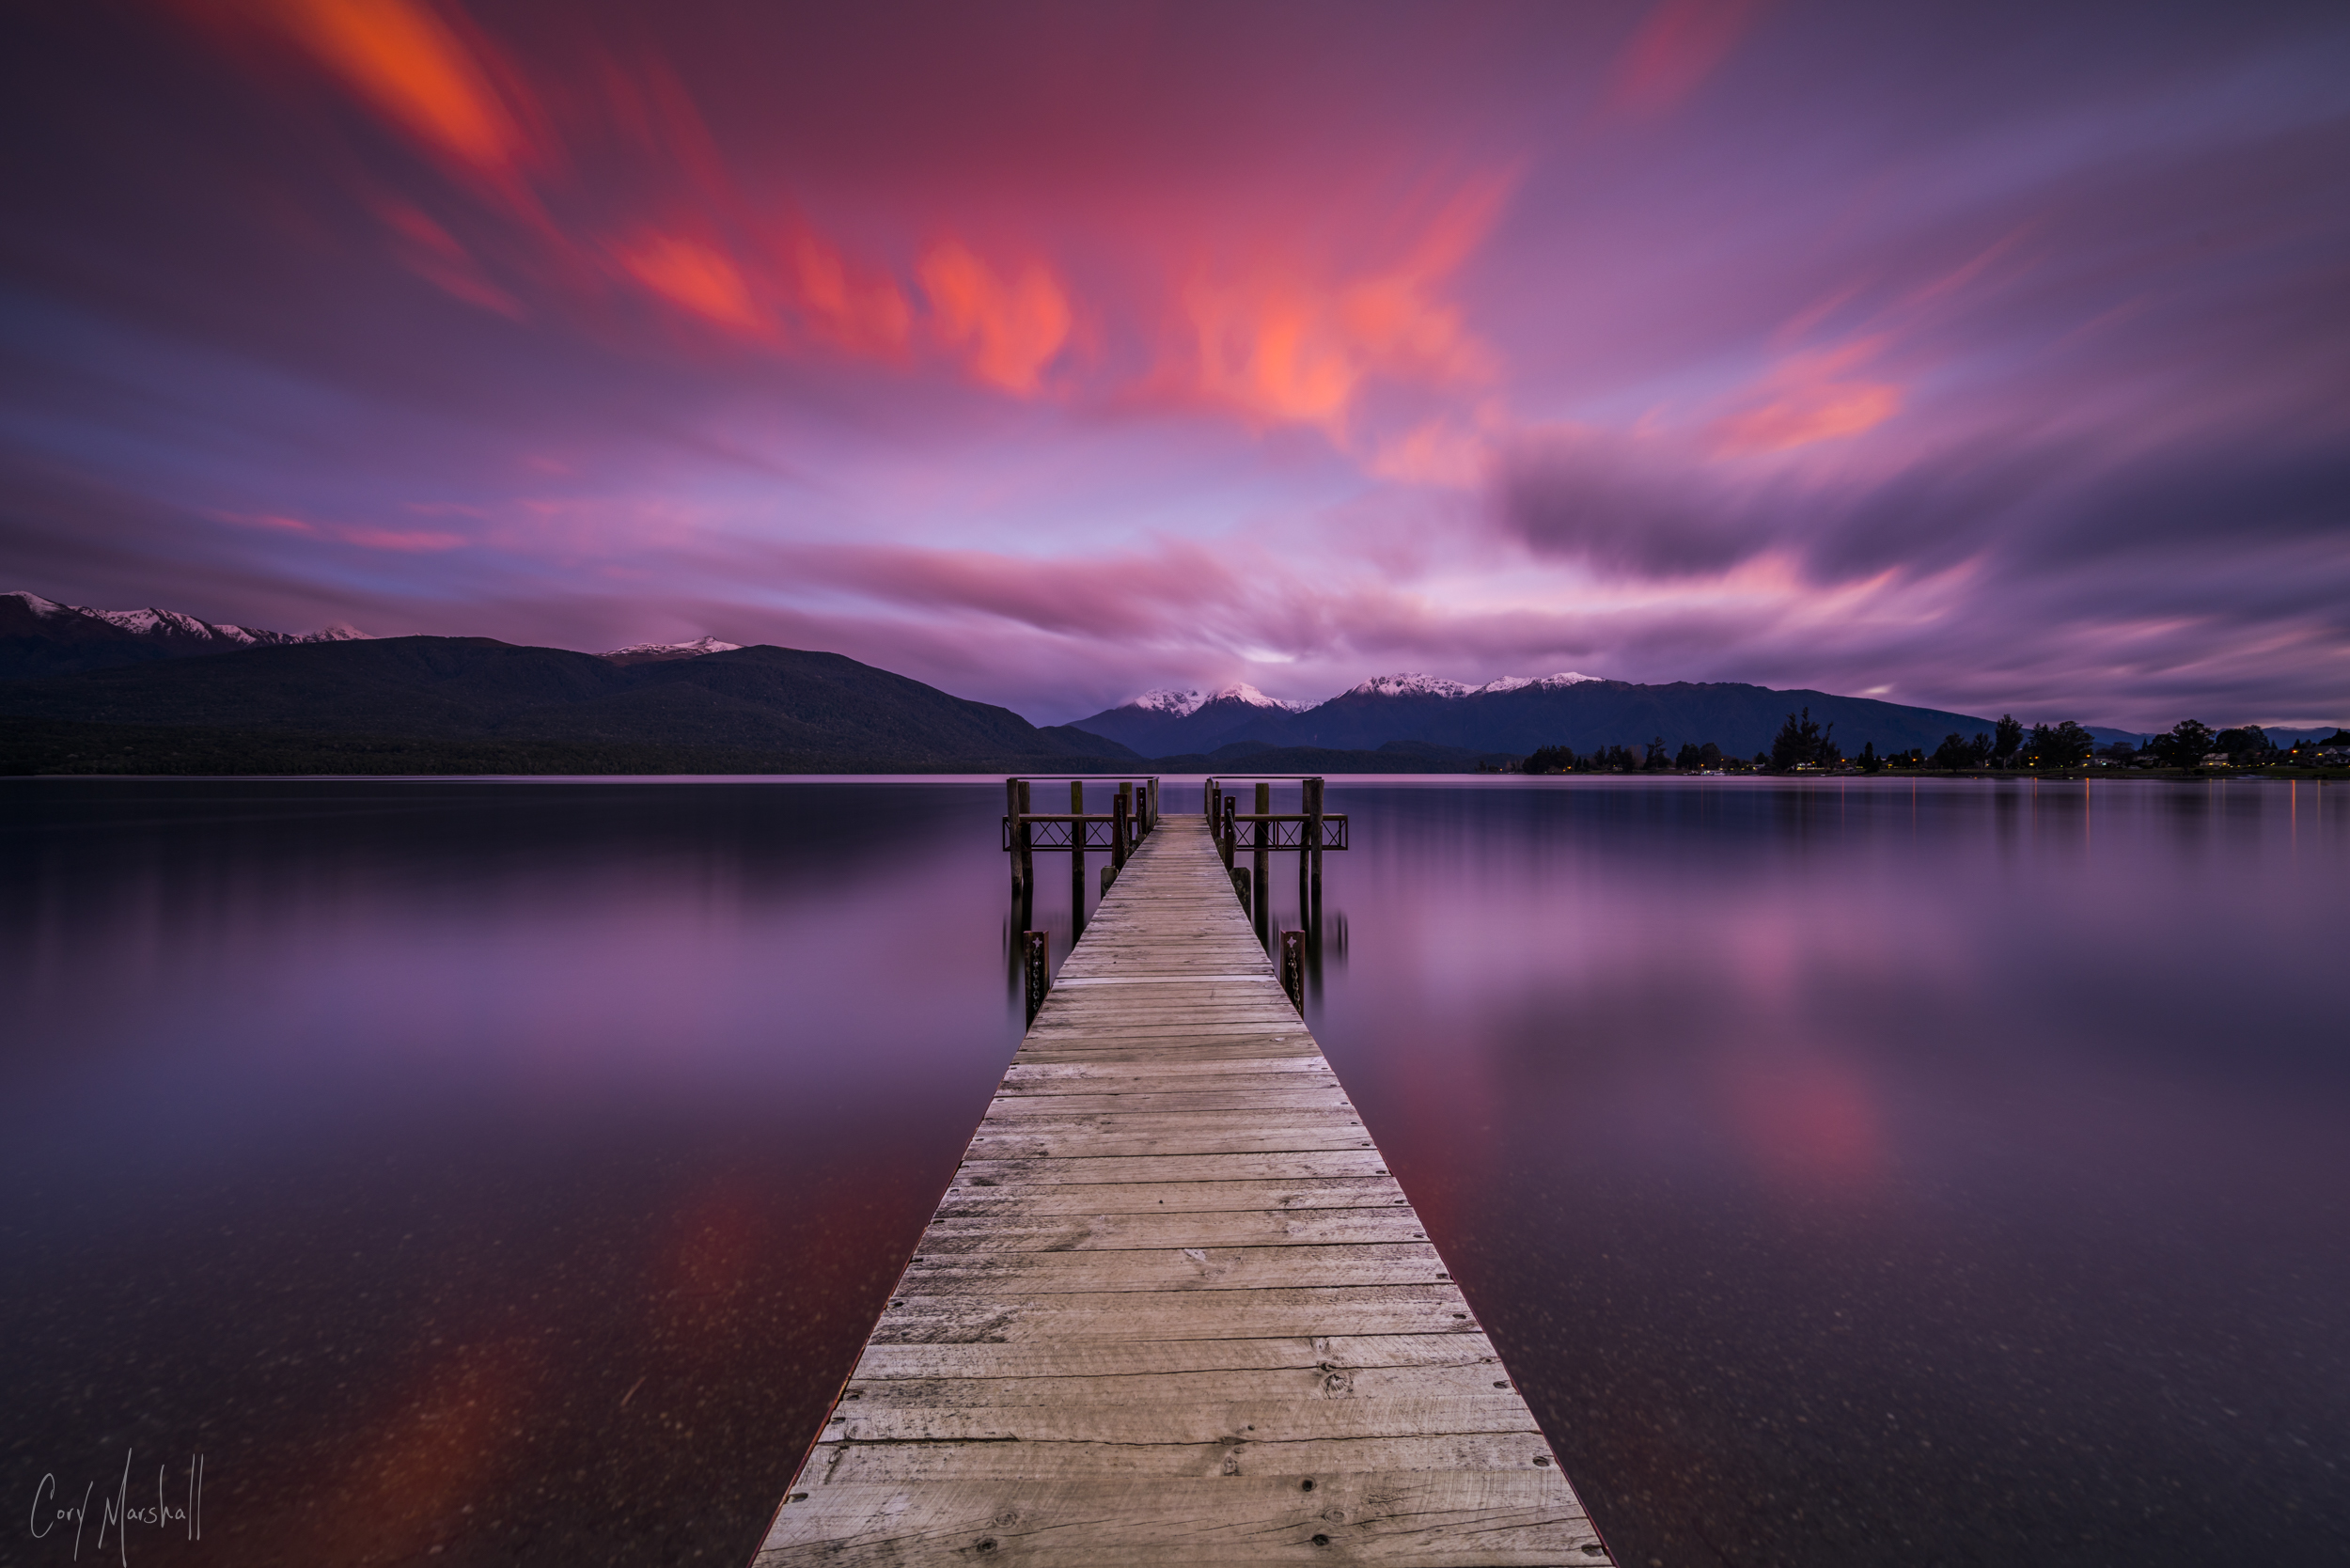 Te Anau Pier in New Zealand.